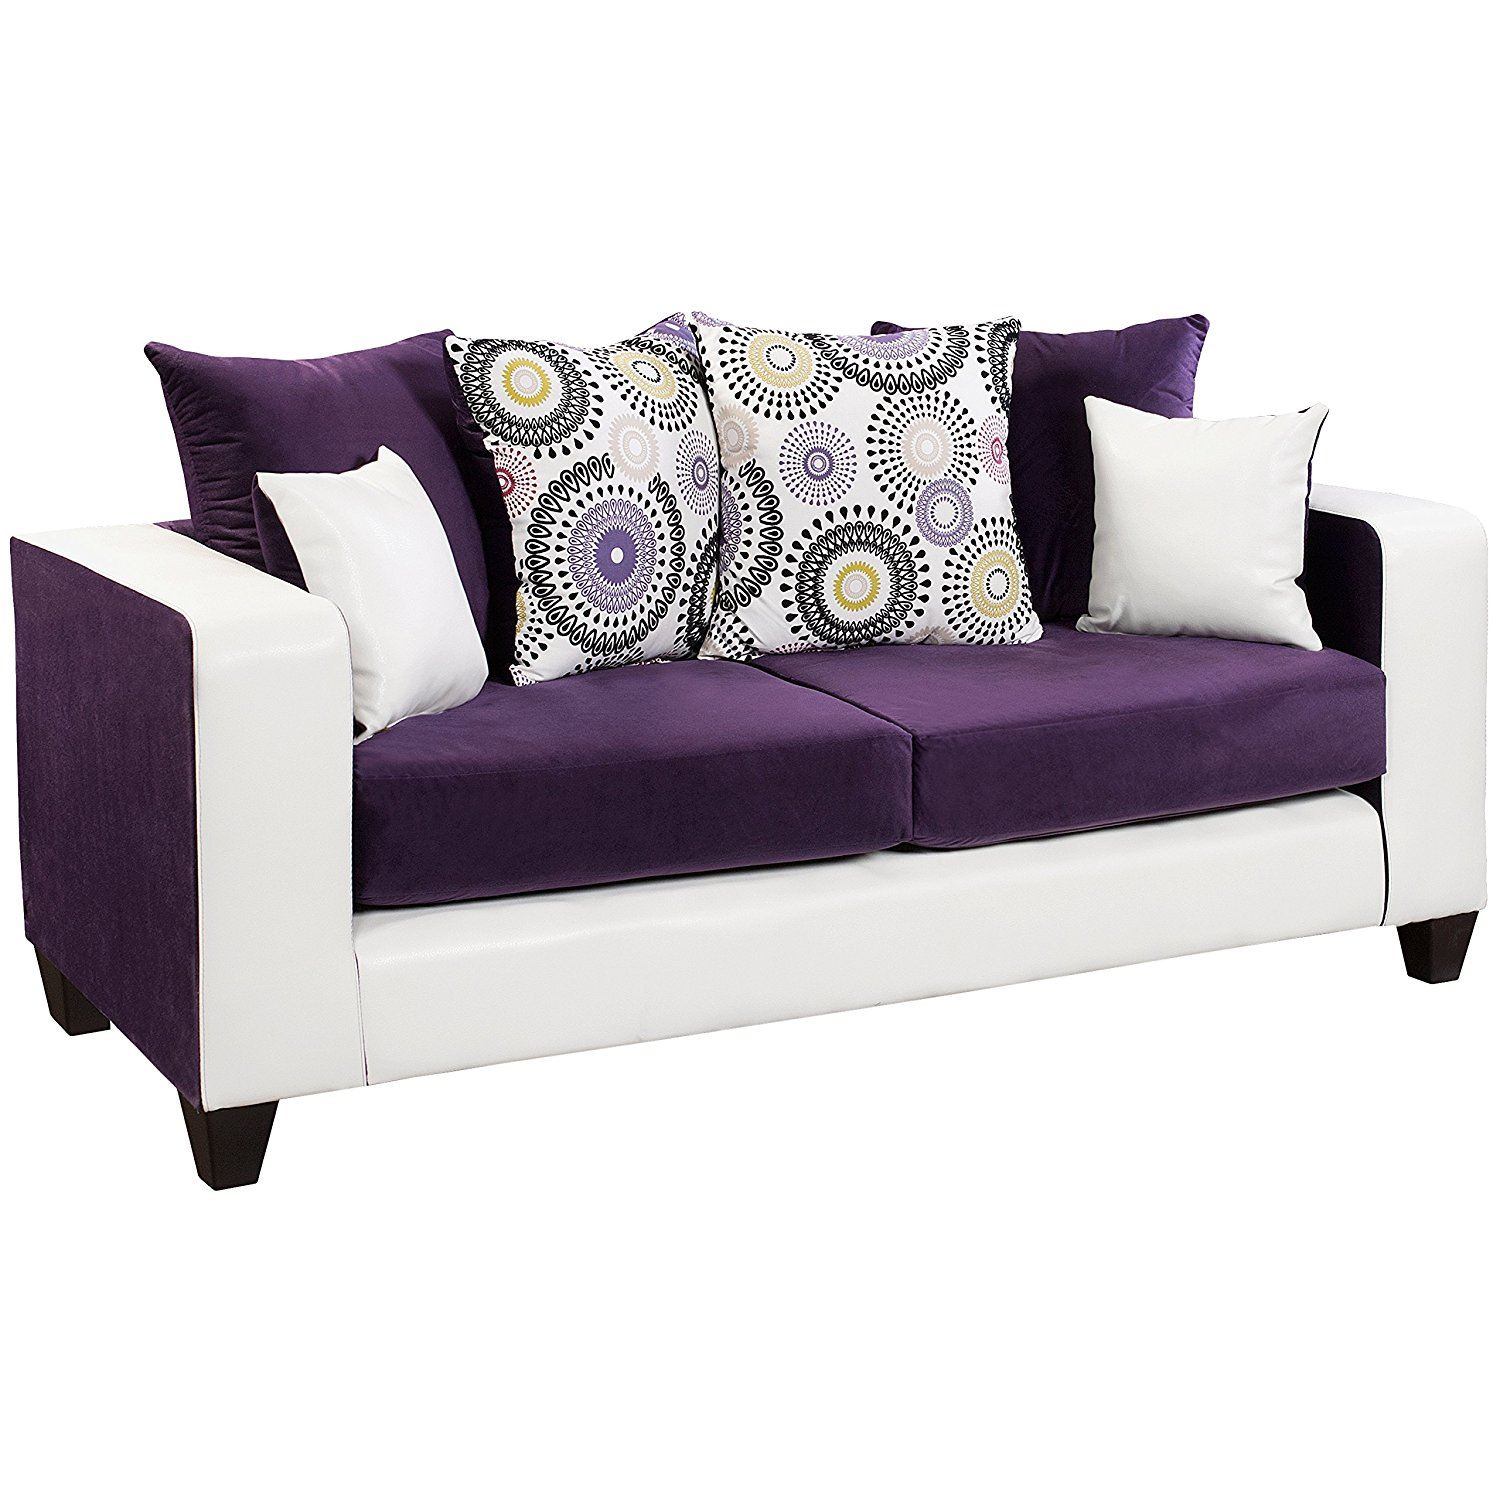 Purple Lounge Chair | Eggplant Couch | Purple Sofa